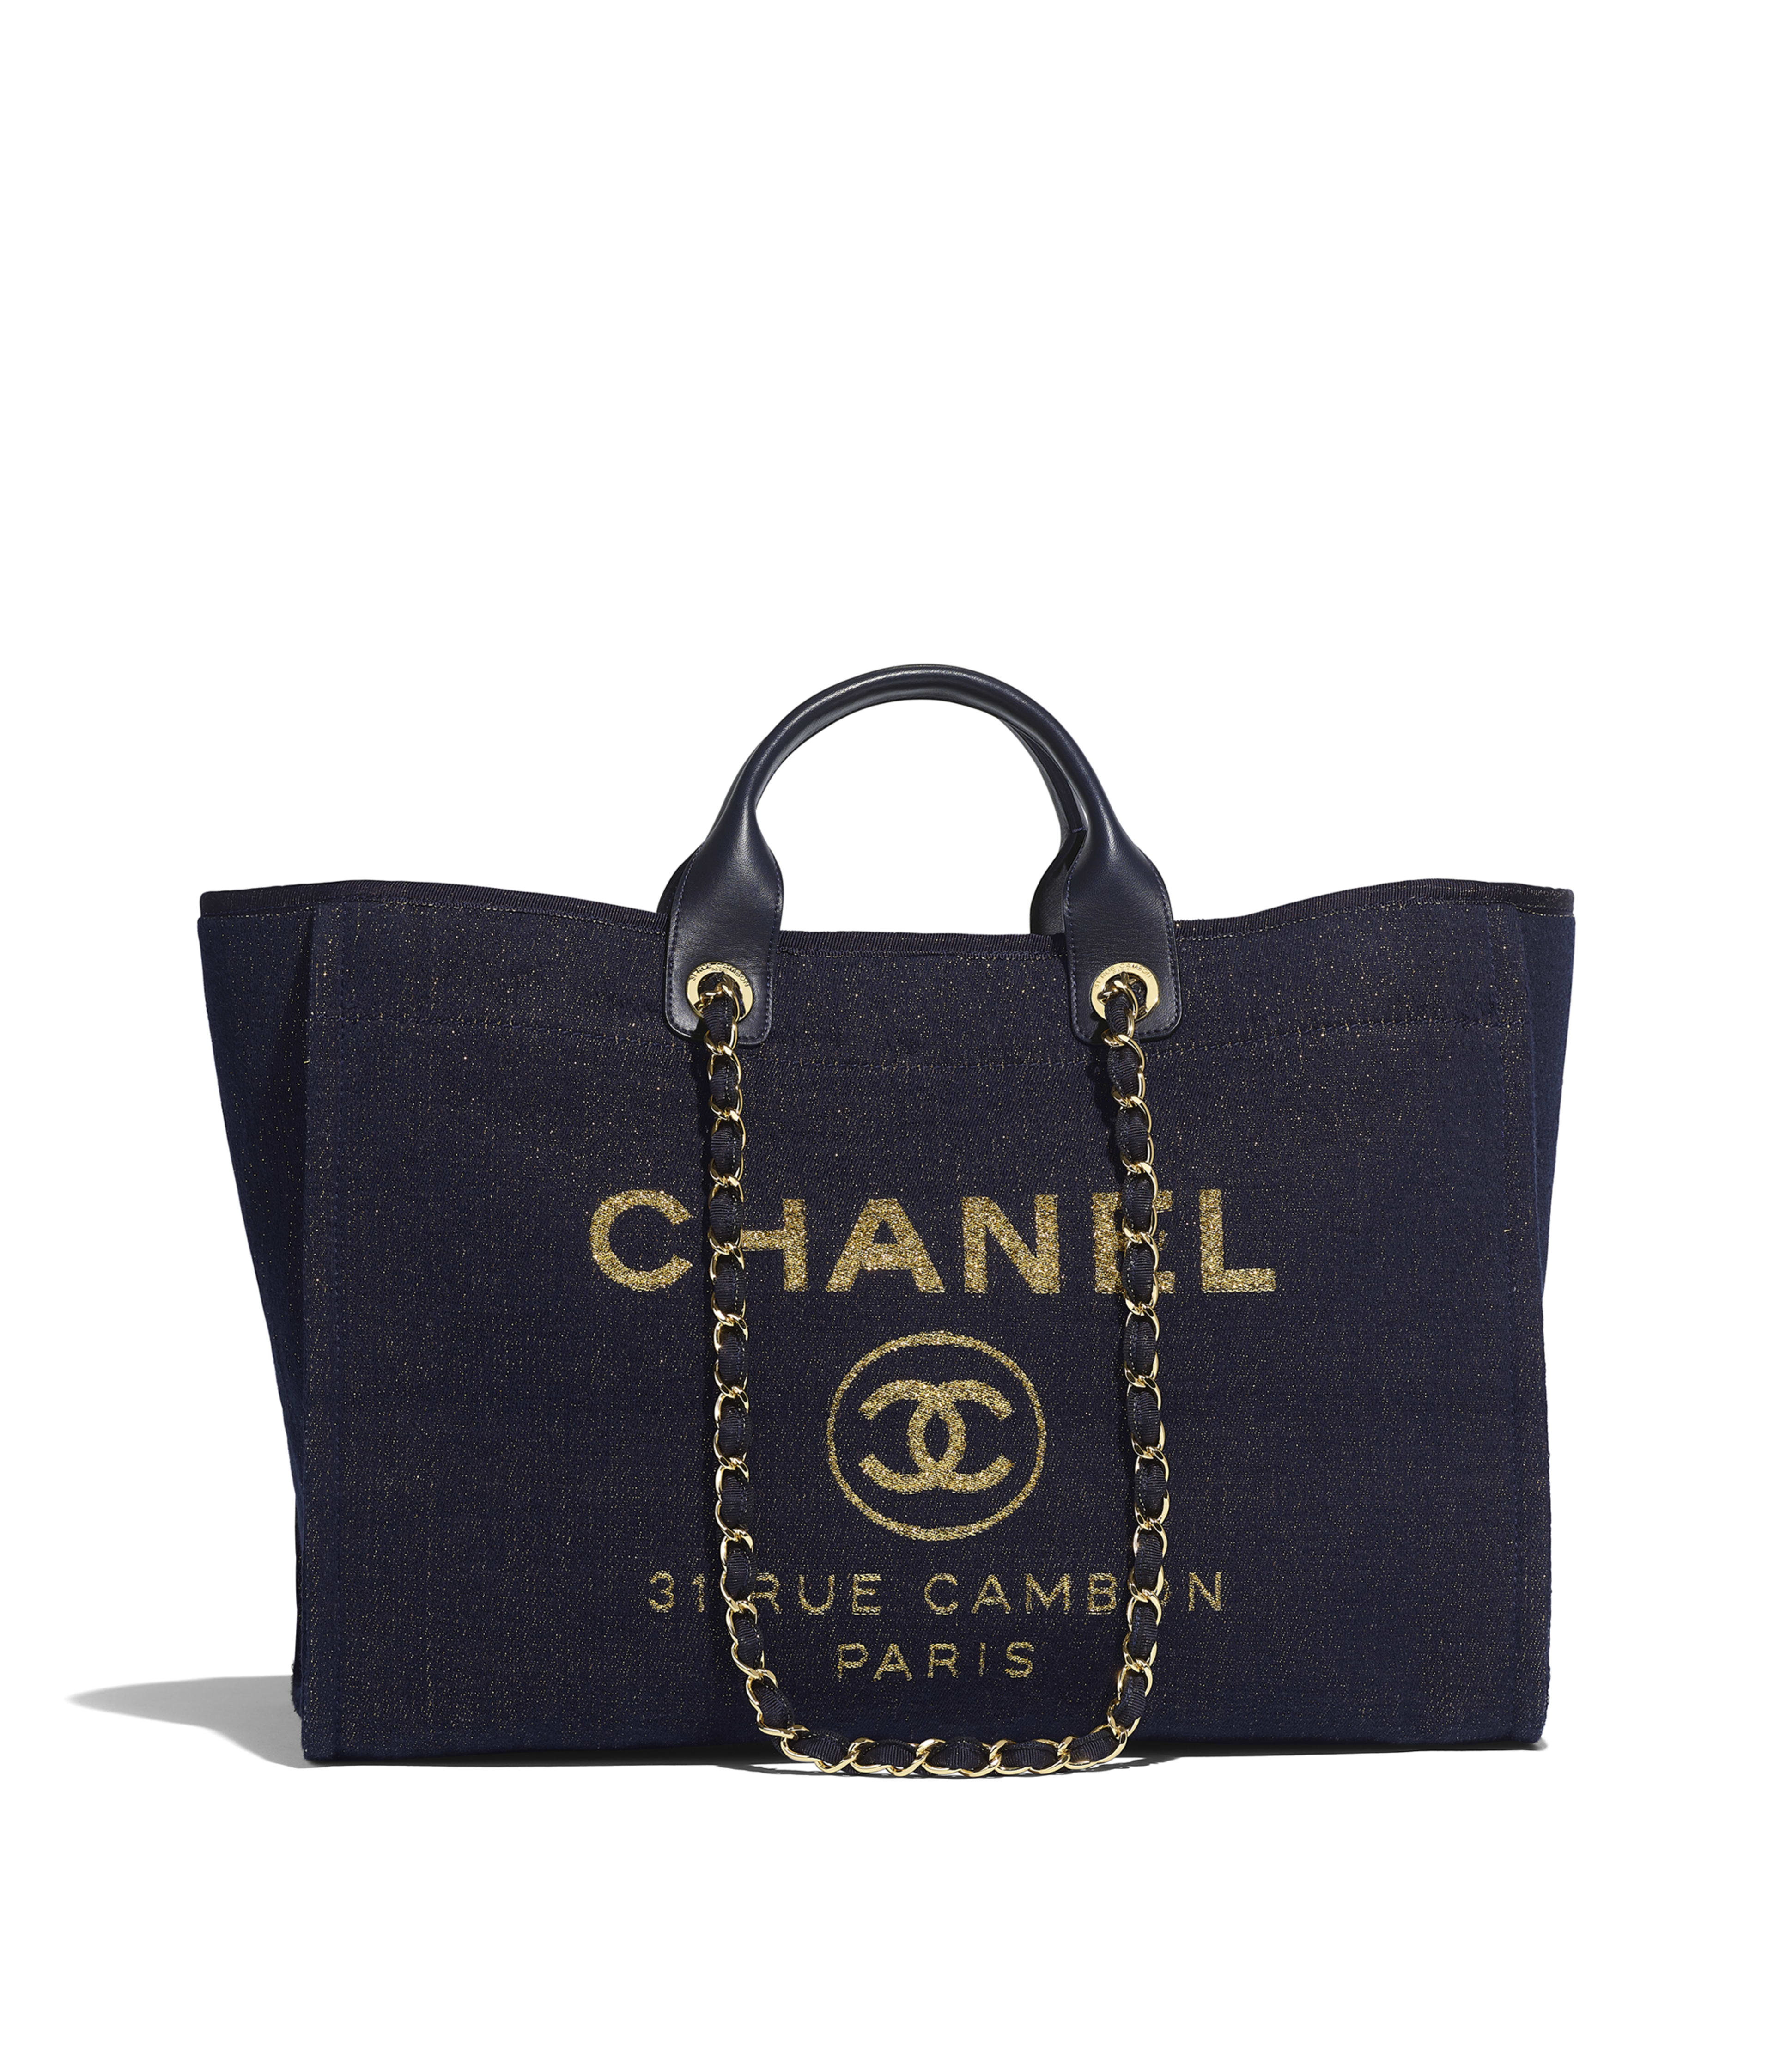 7989568f7 Large Shopping Bag Mixed Fibers, Lurex Canvas & Gold-Tone Metal, Navy Blue  & Gold Ref. A93786B01008N4804